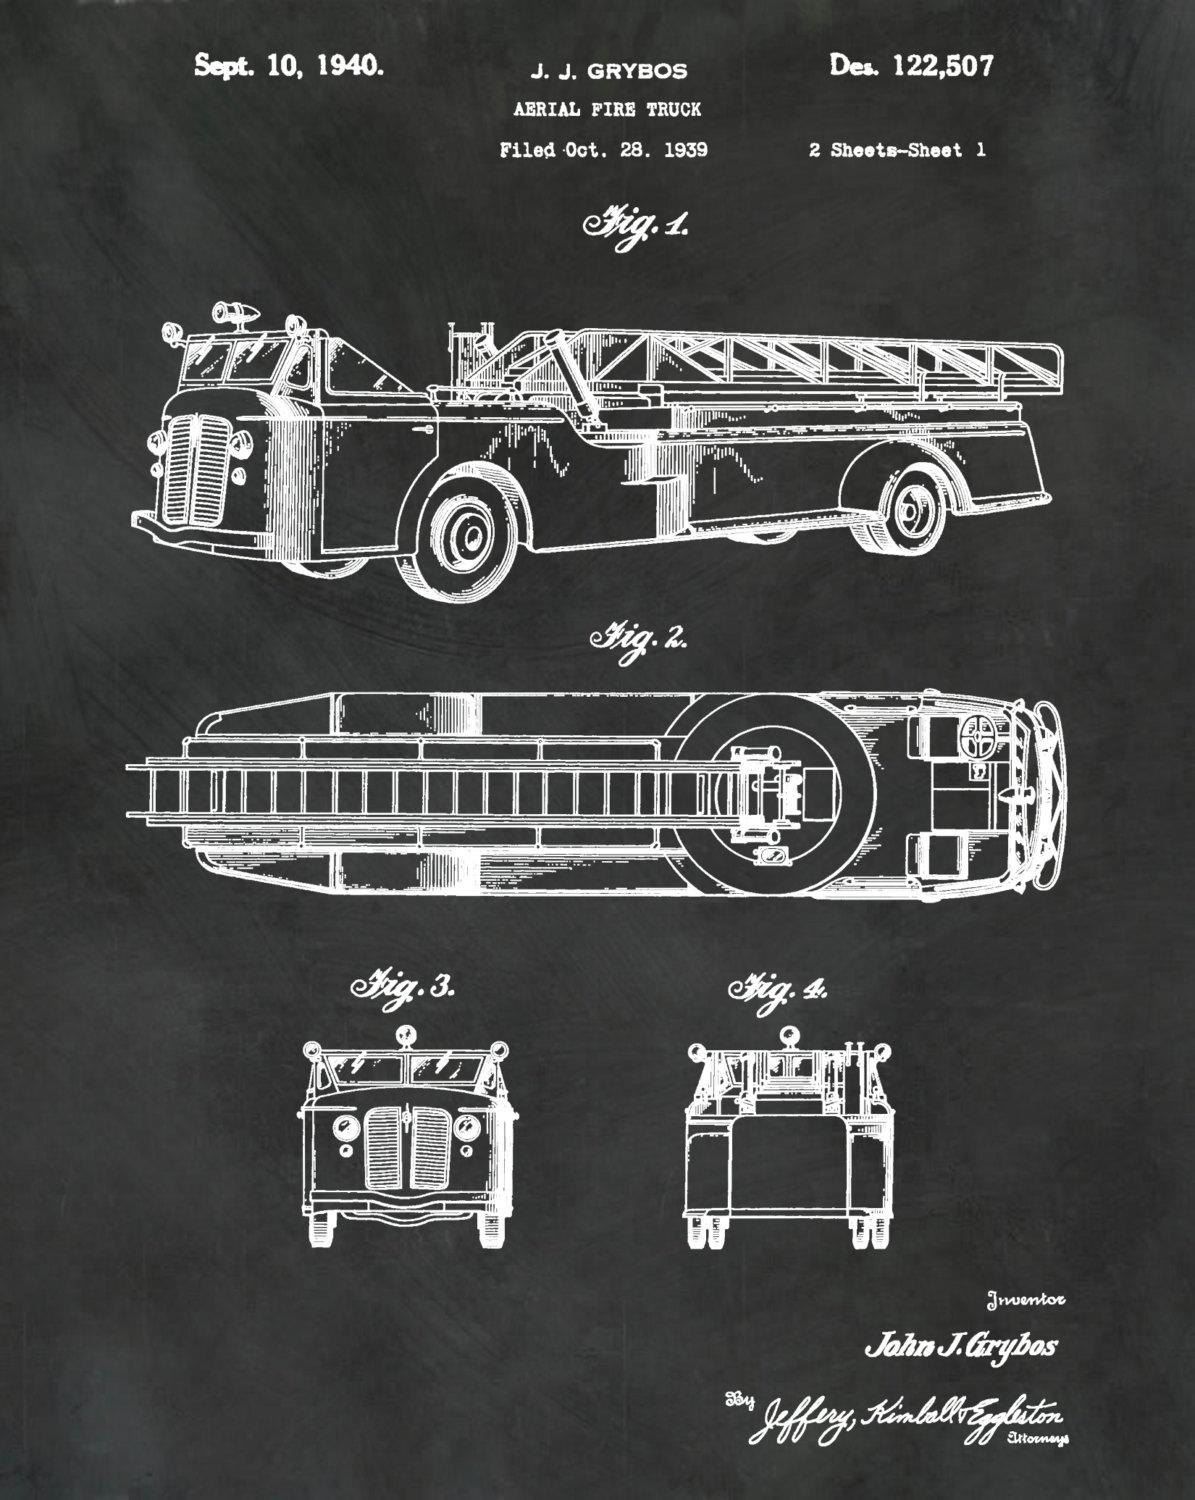 Patent Aerial Fire Truck 1940 Designj.j (View 11 of 20)